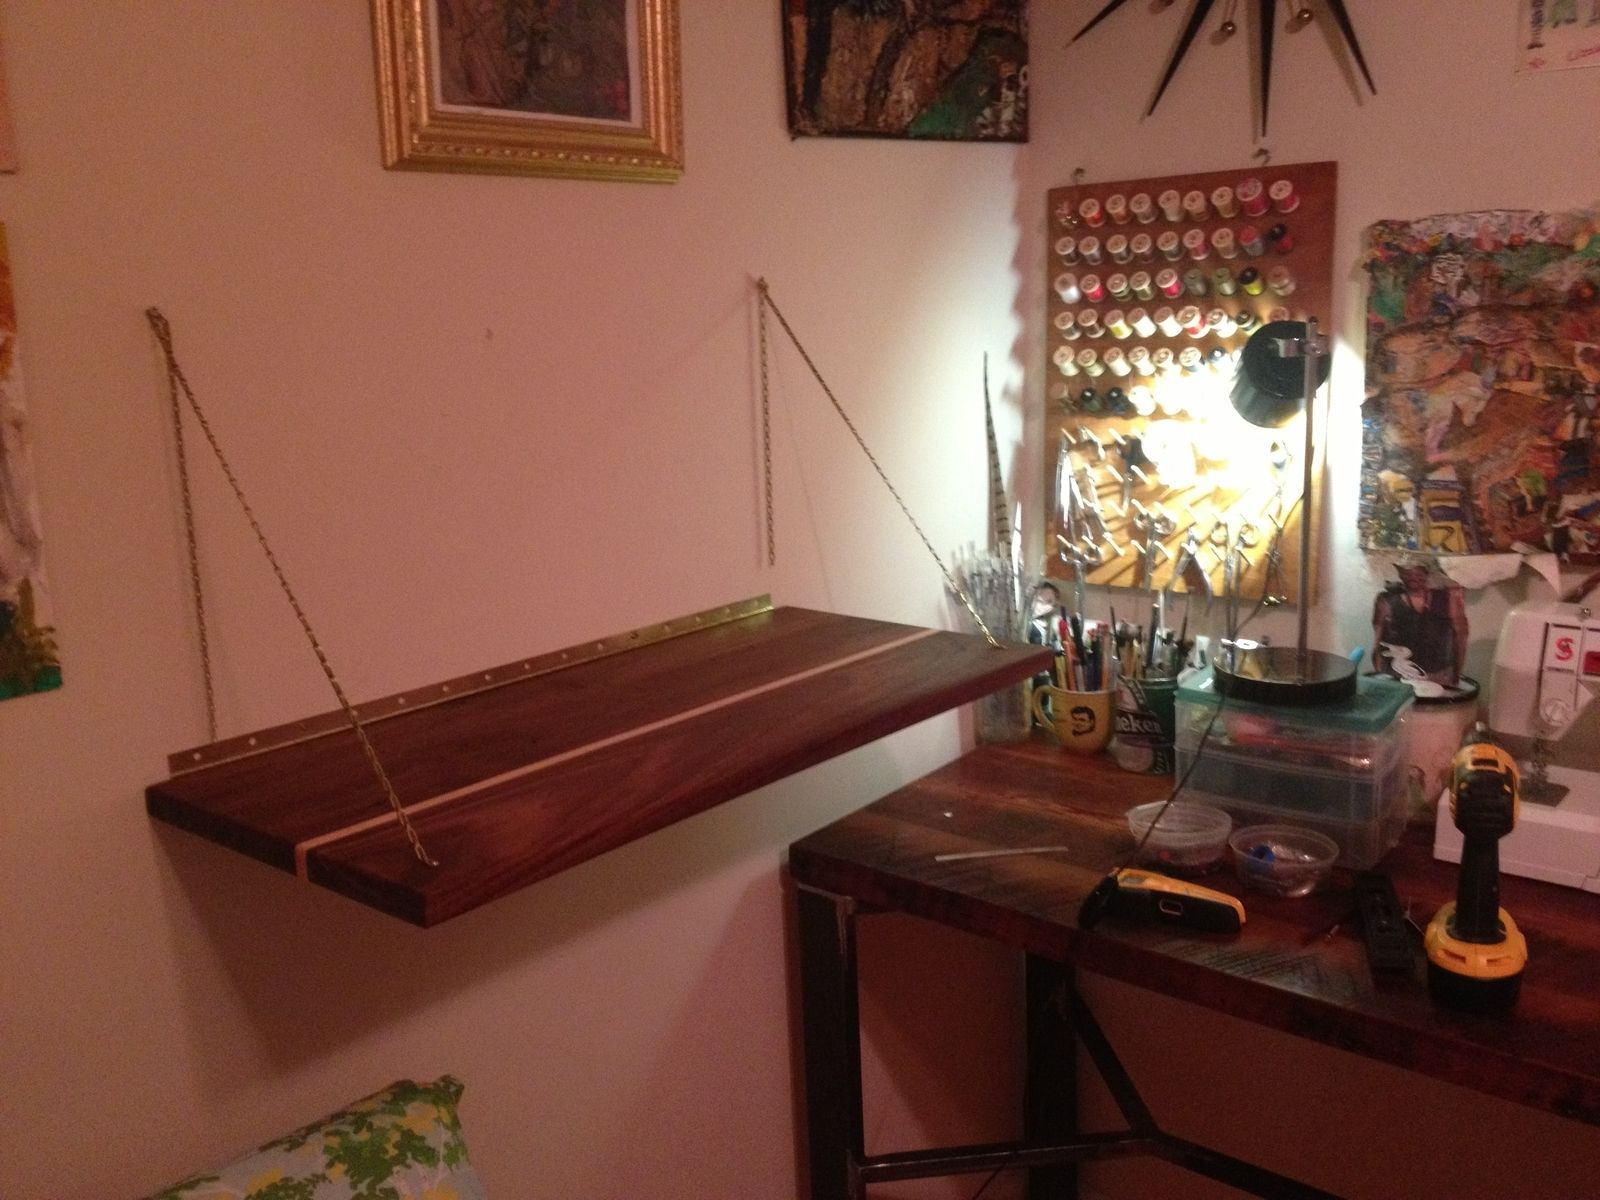 Fold Down Desktop   For Sewing Table, Or Standing Desk